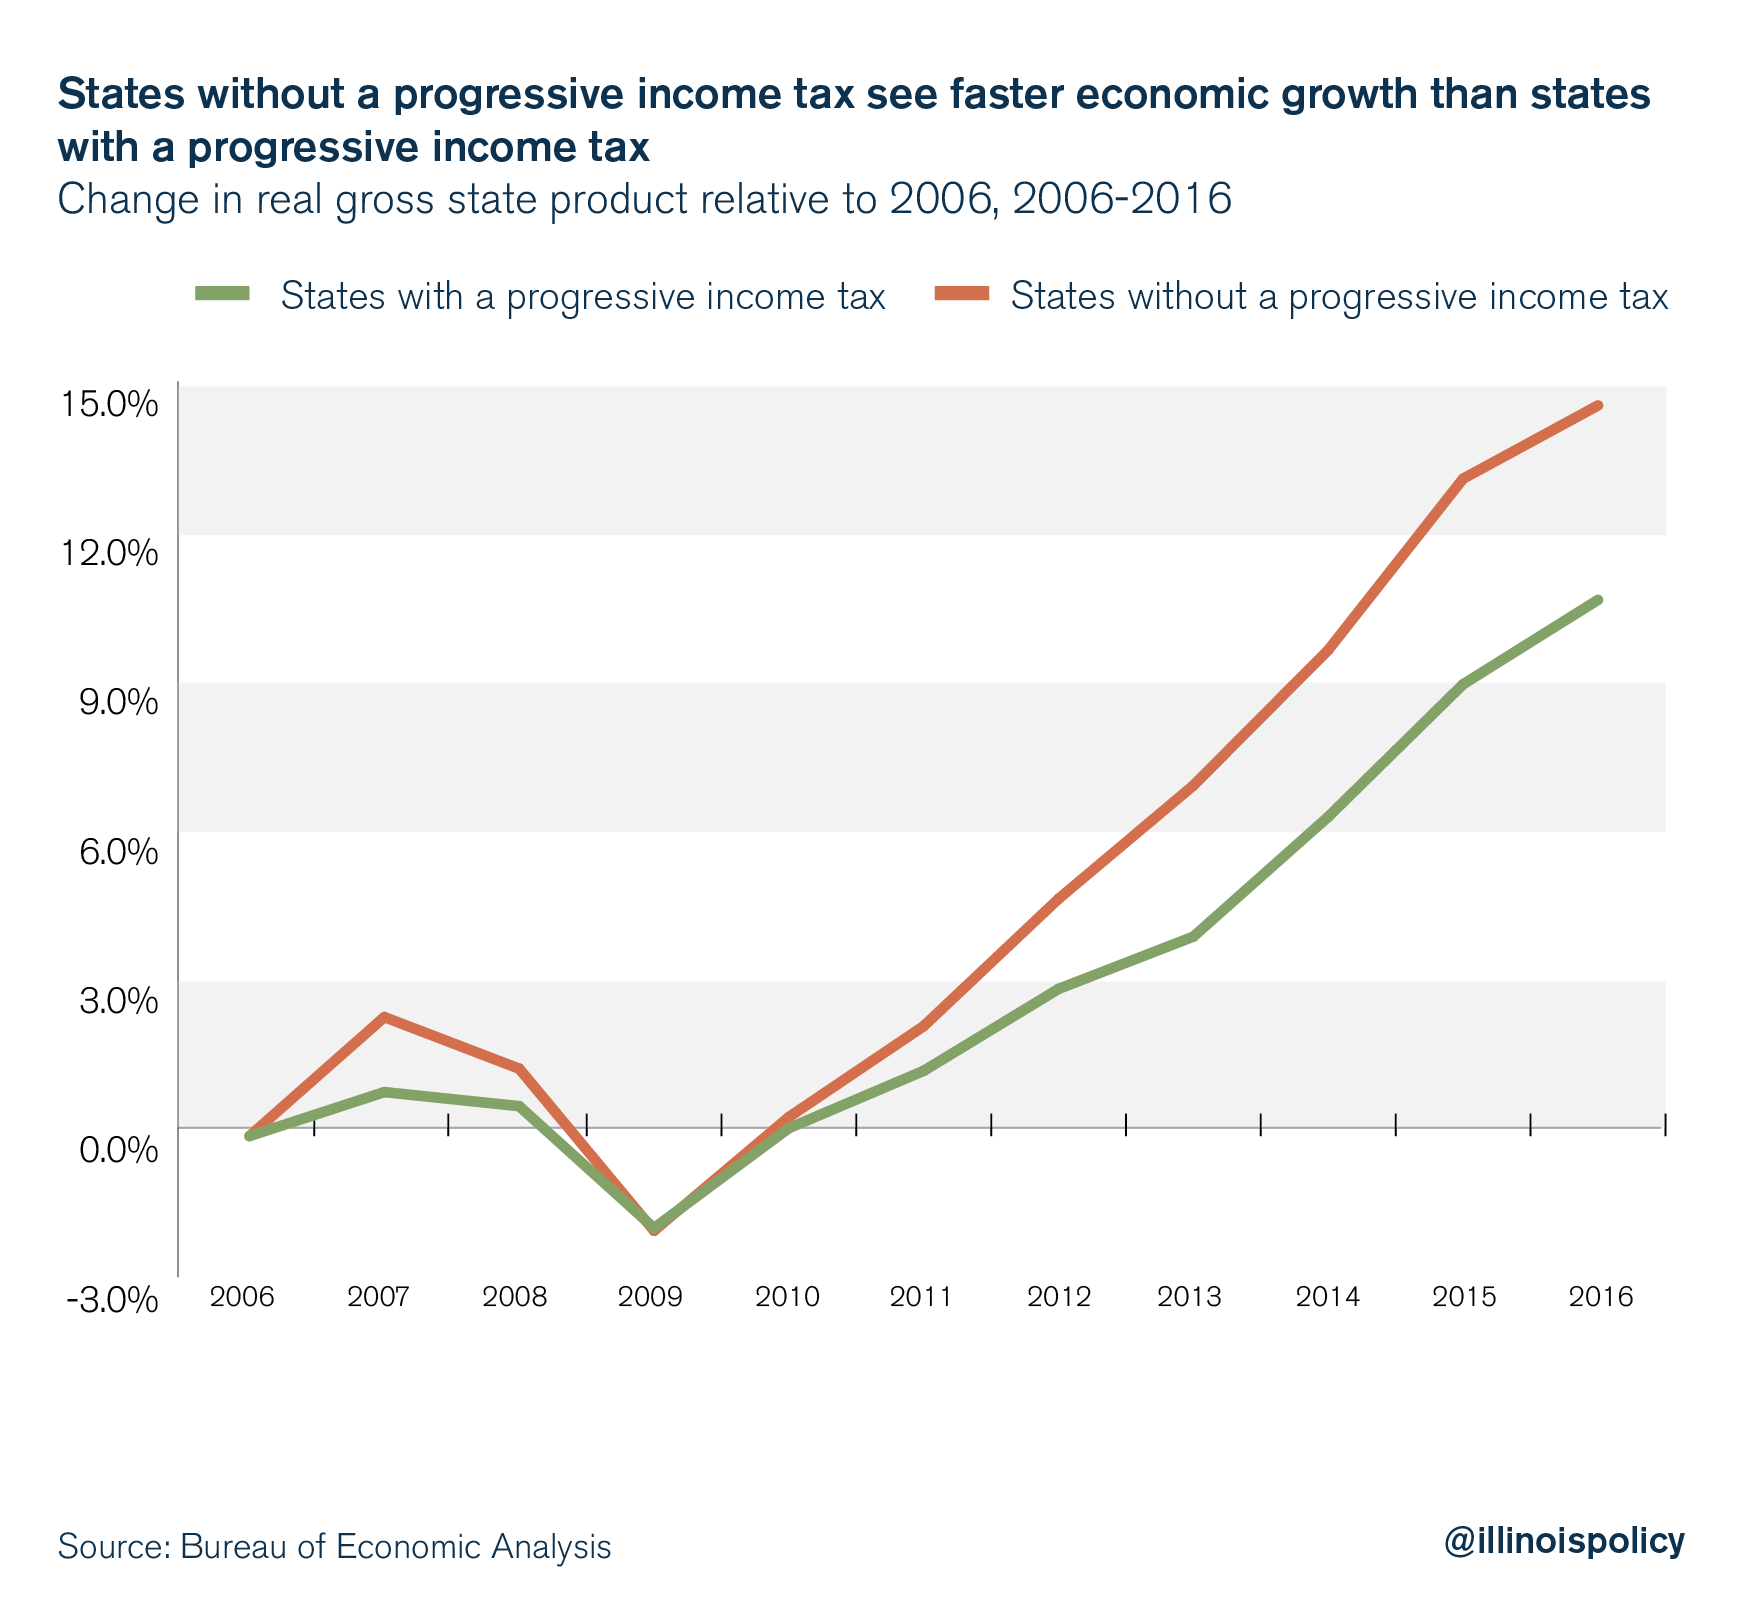 States without a progressive income tax see far faster economic growth than states with a progressive income tax